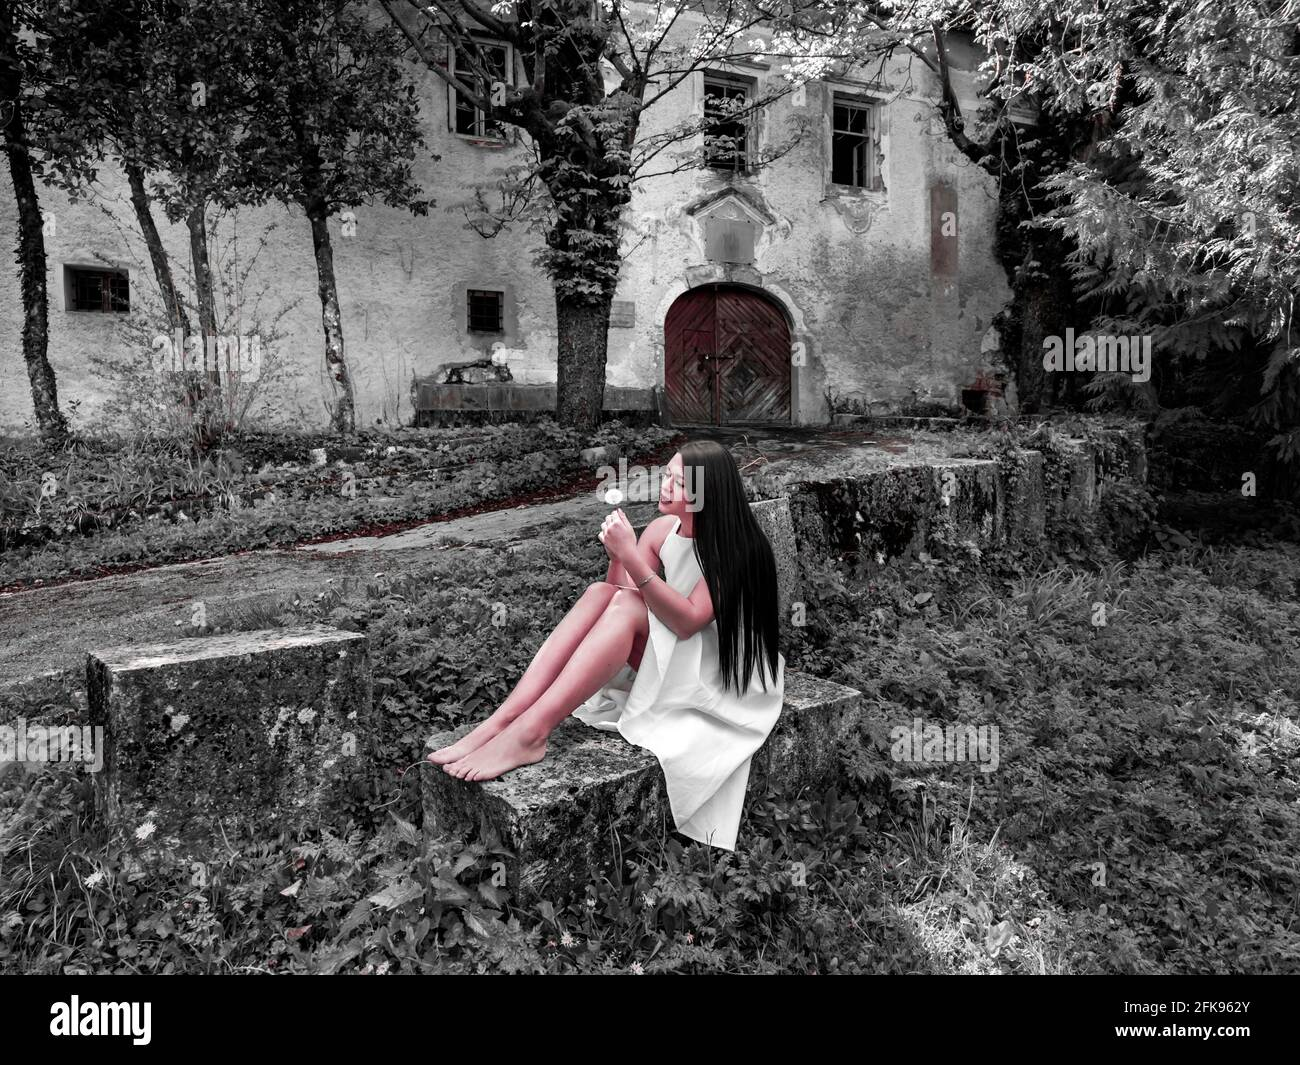 Young woman sitting barefeet with dandelion flower in hand semi mix mixed monochrome Red Redish tint creative artistic arty altered image Stock Photo